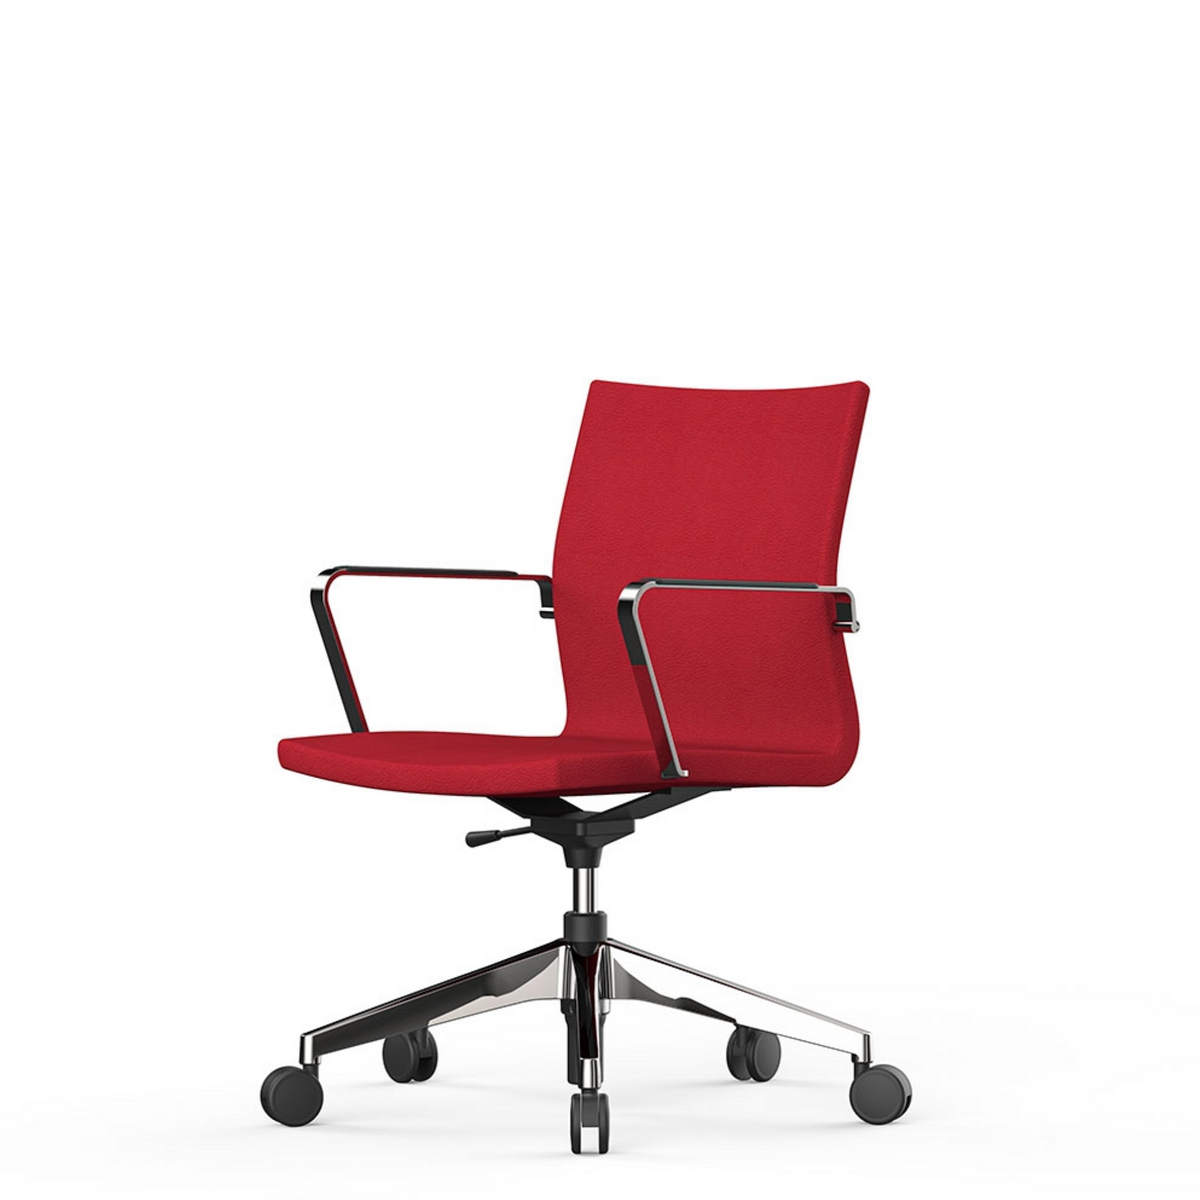 Actiu Office UMA Red Chair with Polished Aluminium Base